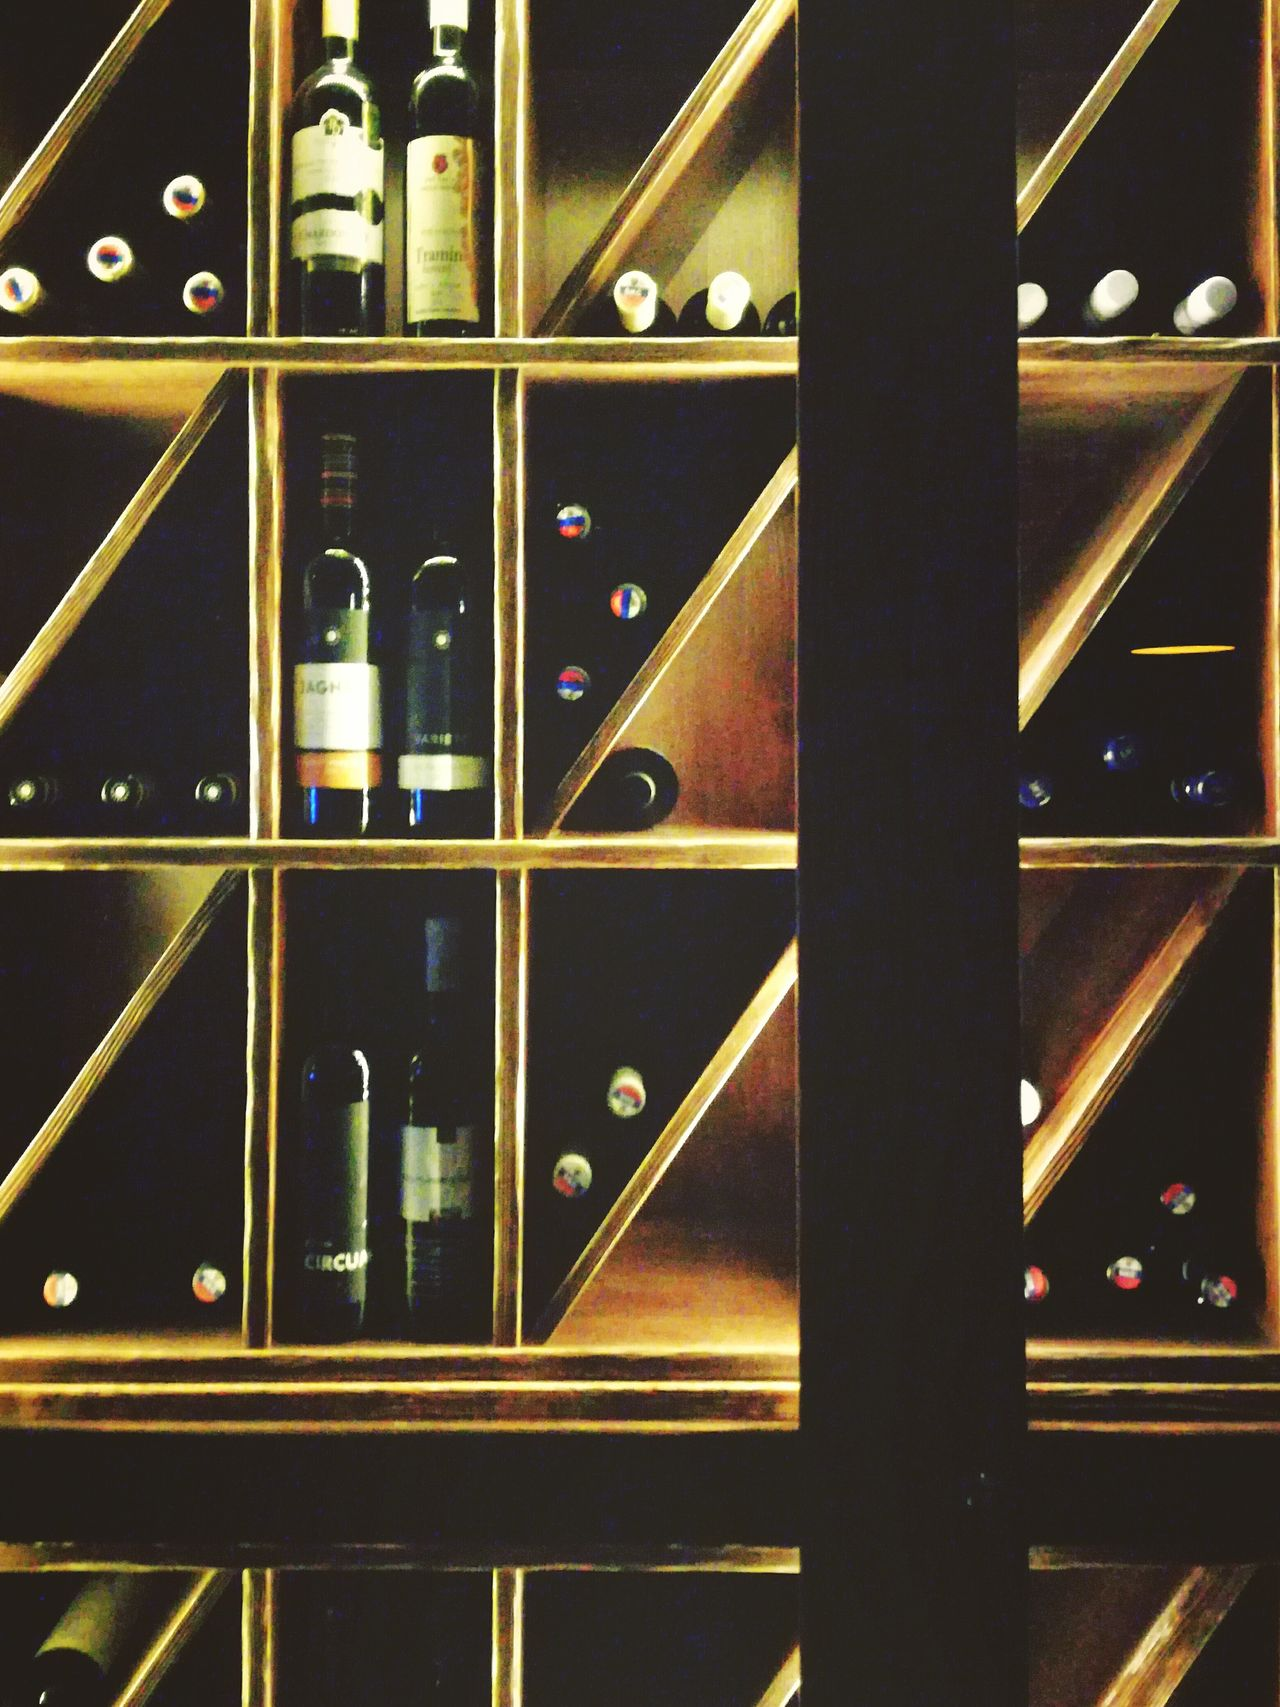 Metal No People Indoors  Backgrounds Wine Wine Bottle Wine Time Wine Tasting Winelover Wine? Oh! Winelovers  Wines Wineandmore Winetasting Wine Bottles Wine Rack Shelf Intimate Light Source Intimate Shadow Wood - Material Wooden